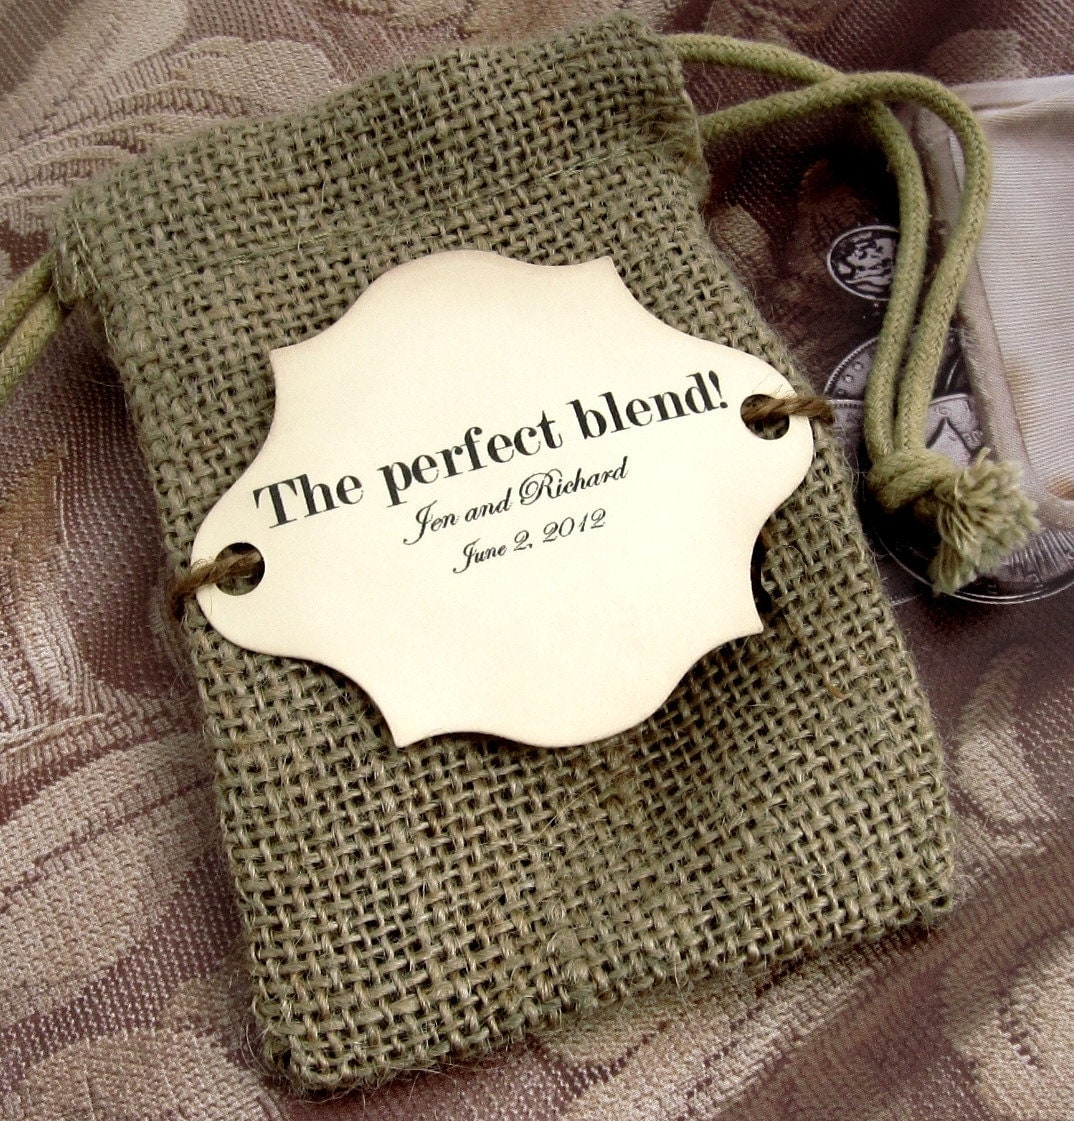 Wedding Favor Gift Bags: 10 Burlap Wedding Favor Bags The Perfect Blend By